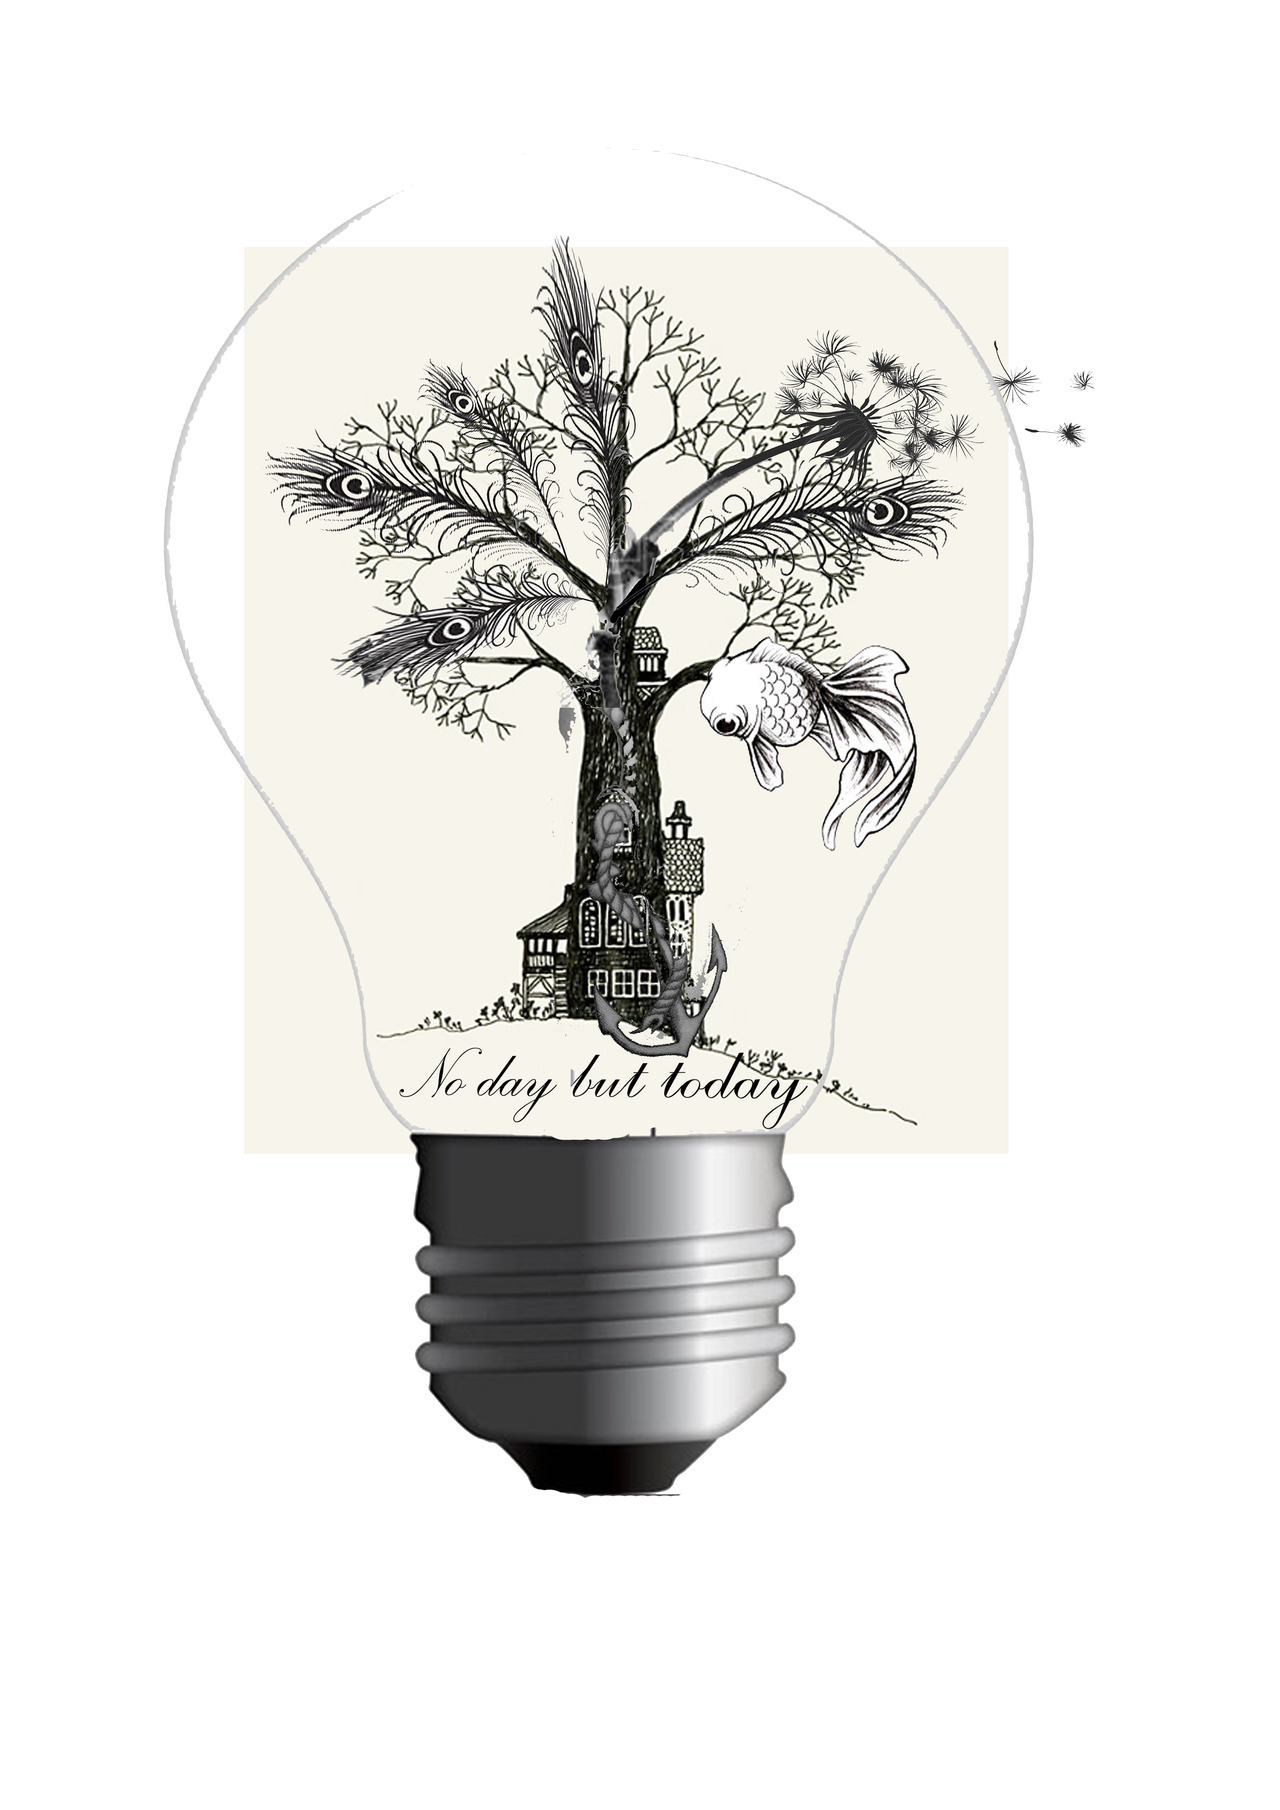 ok it kind of is an change/addition to the tattoo I want - the original concept being just the light bulb, text, a willow tree and a fish. Iwantto add in an anchor burying into the front garden of a house and with rope around the trunk of the house the 'tree' grows from - it has a dandelion head with feathered leaves and the seeds are leaving the flower and out of the lighbulb. the whole sort of idea is that I can grow but I know where my roots are and still keeps my whole Albert Einstein quote 'everyone's a genius but if you judge a fish by its ability to climb a tree it will live its whole life believing it's stupid' - basically 'play to your strengths'. this way i could add extras like I thought about changing the lighbulb by adding a basket so it looks like a hot air balloon and having things dangling off it. jesus this is going to cost a fortune.